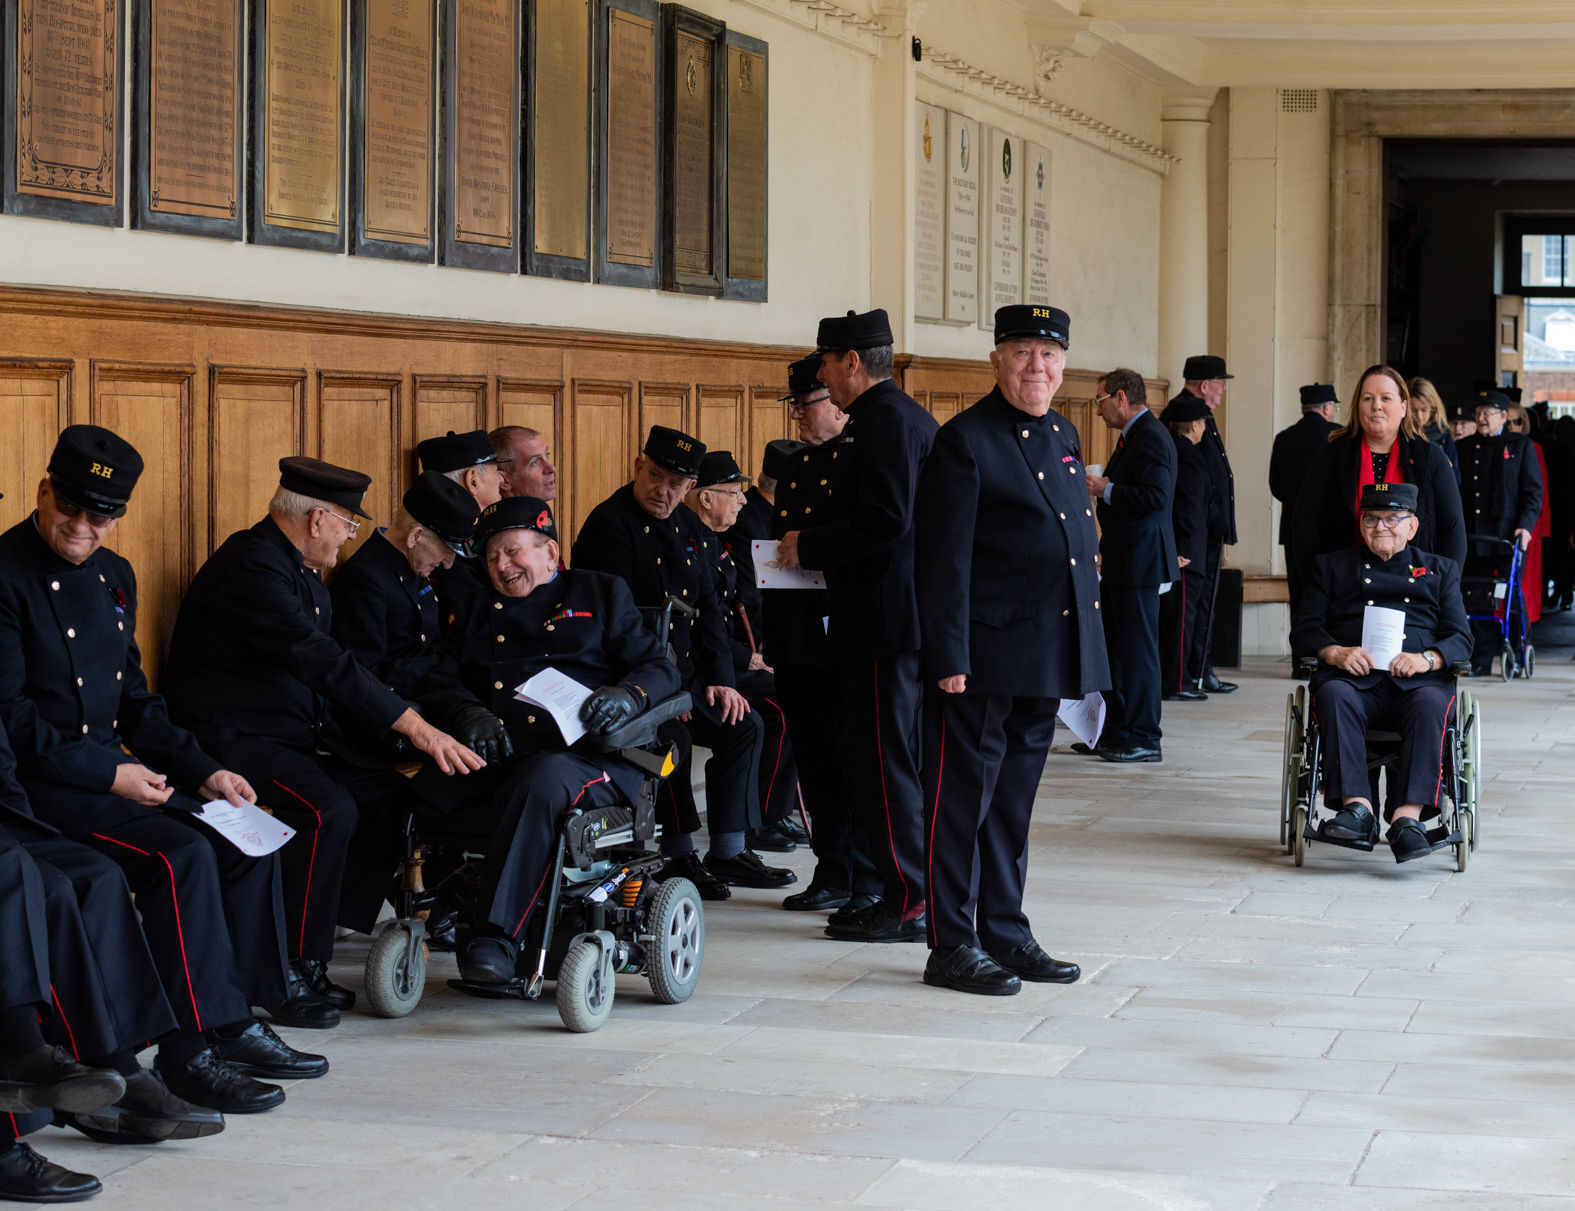 Gathering for a drumhead service, Royal Hospital Chelsea